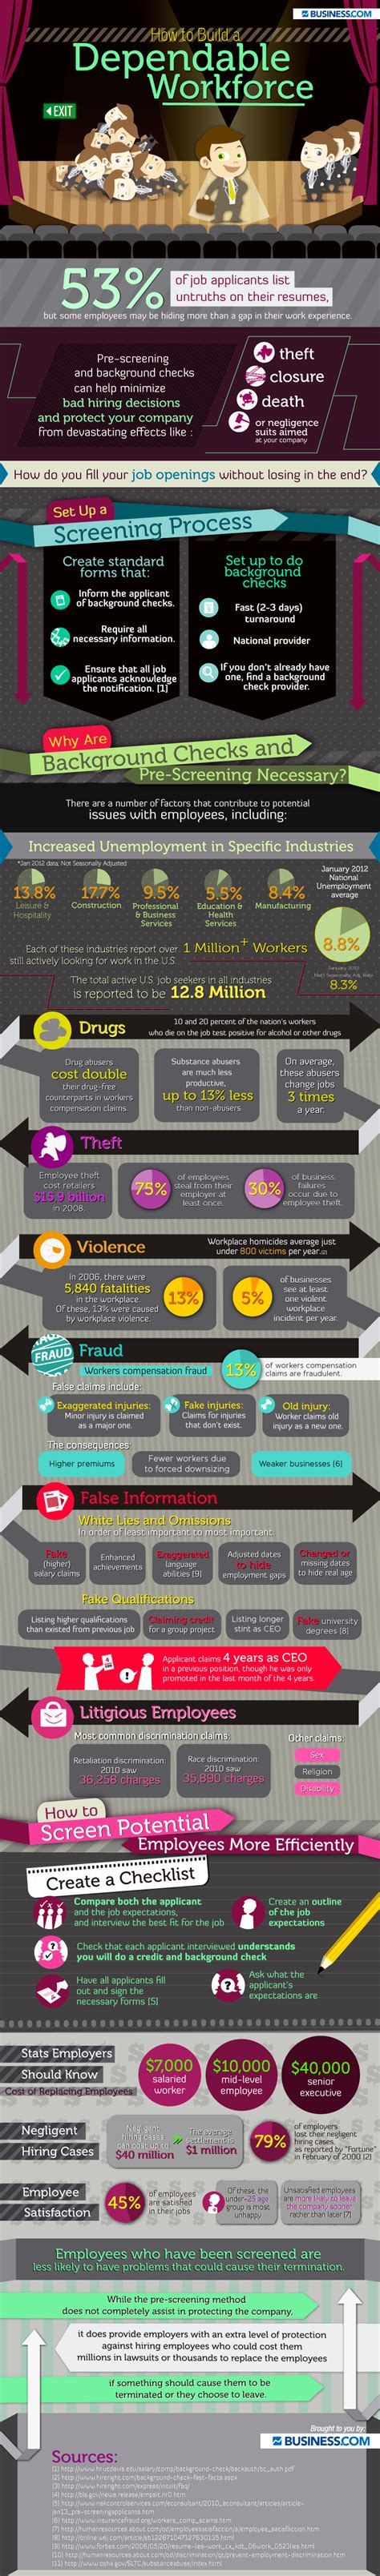 Workforce Background Check Infographic How To Build A Dependable Workforce